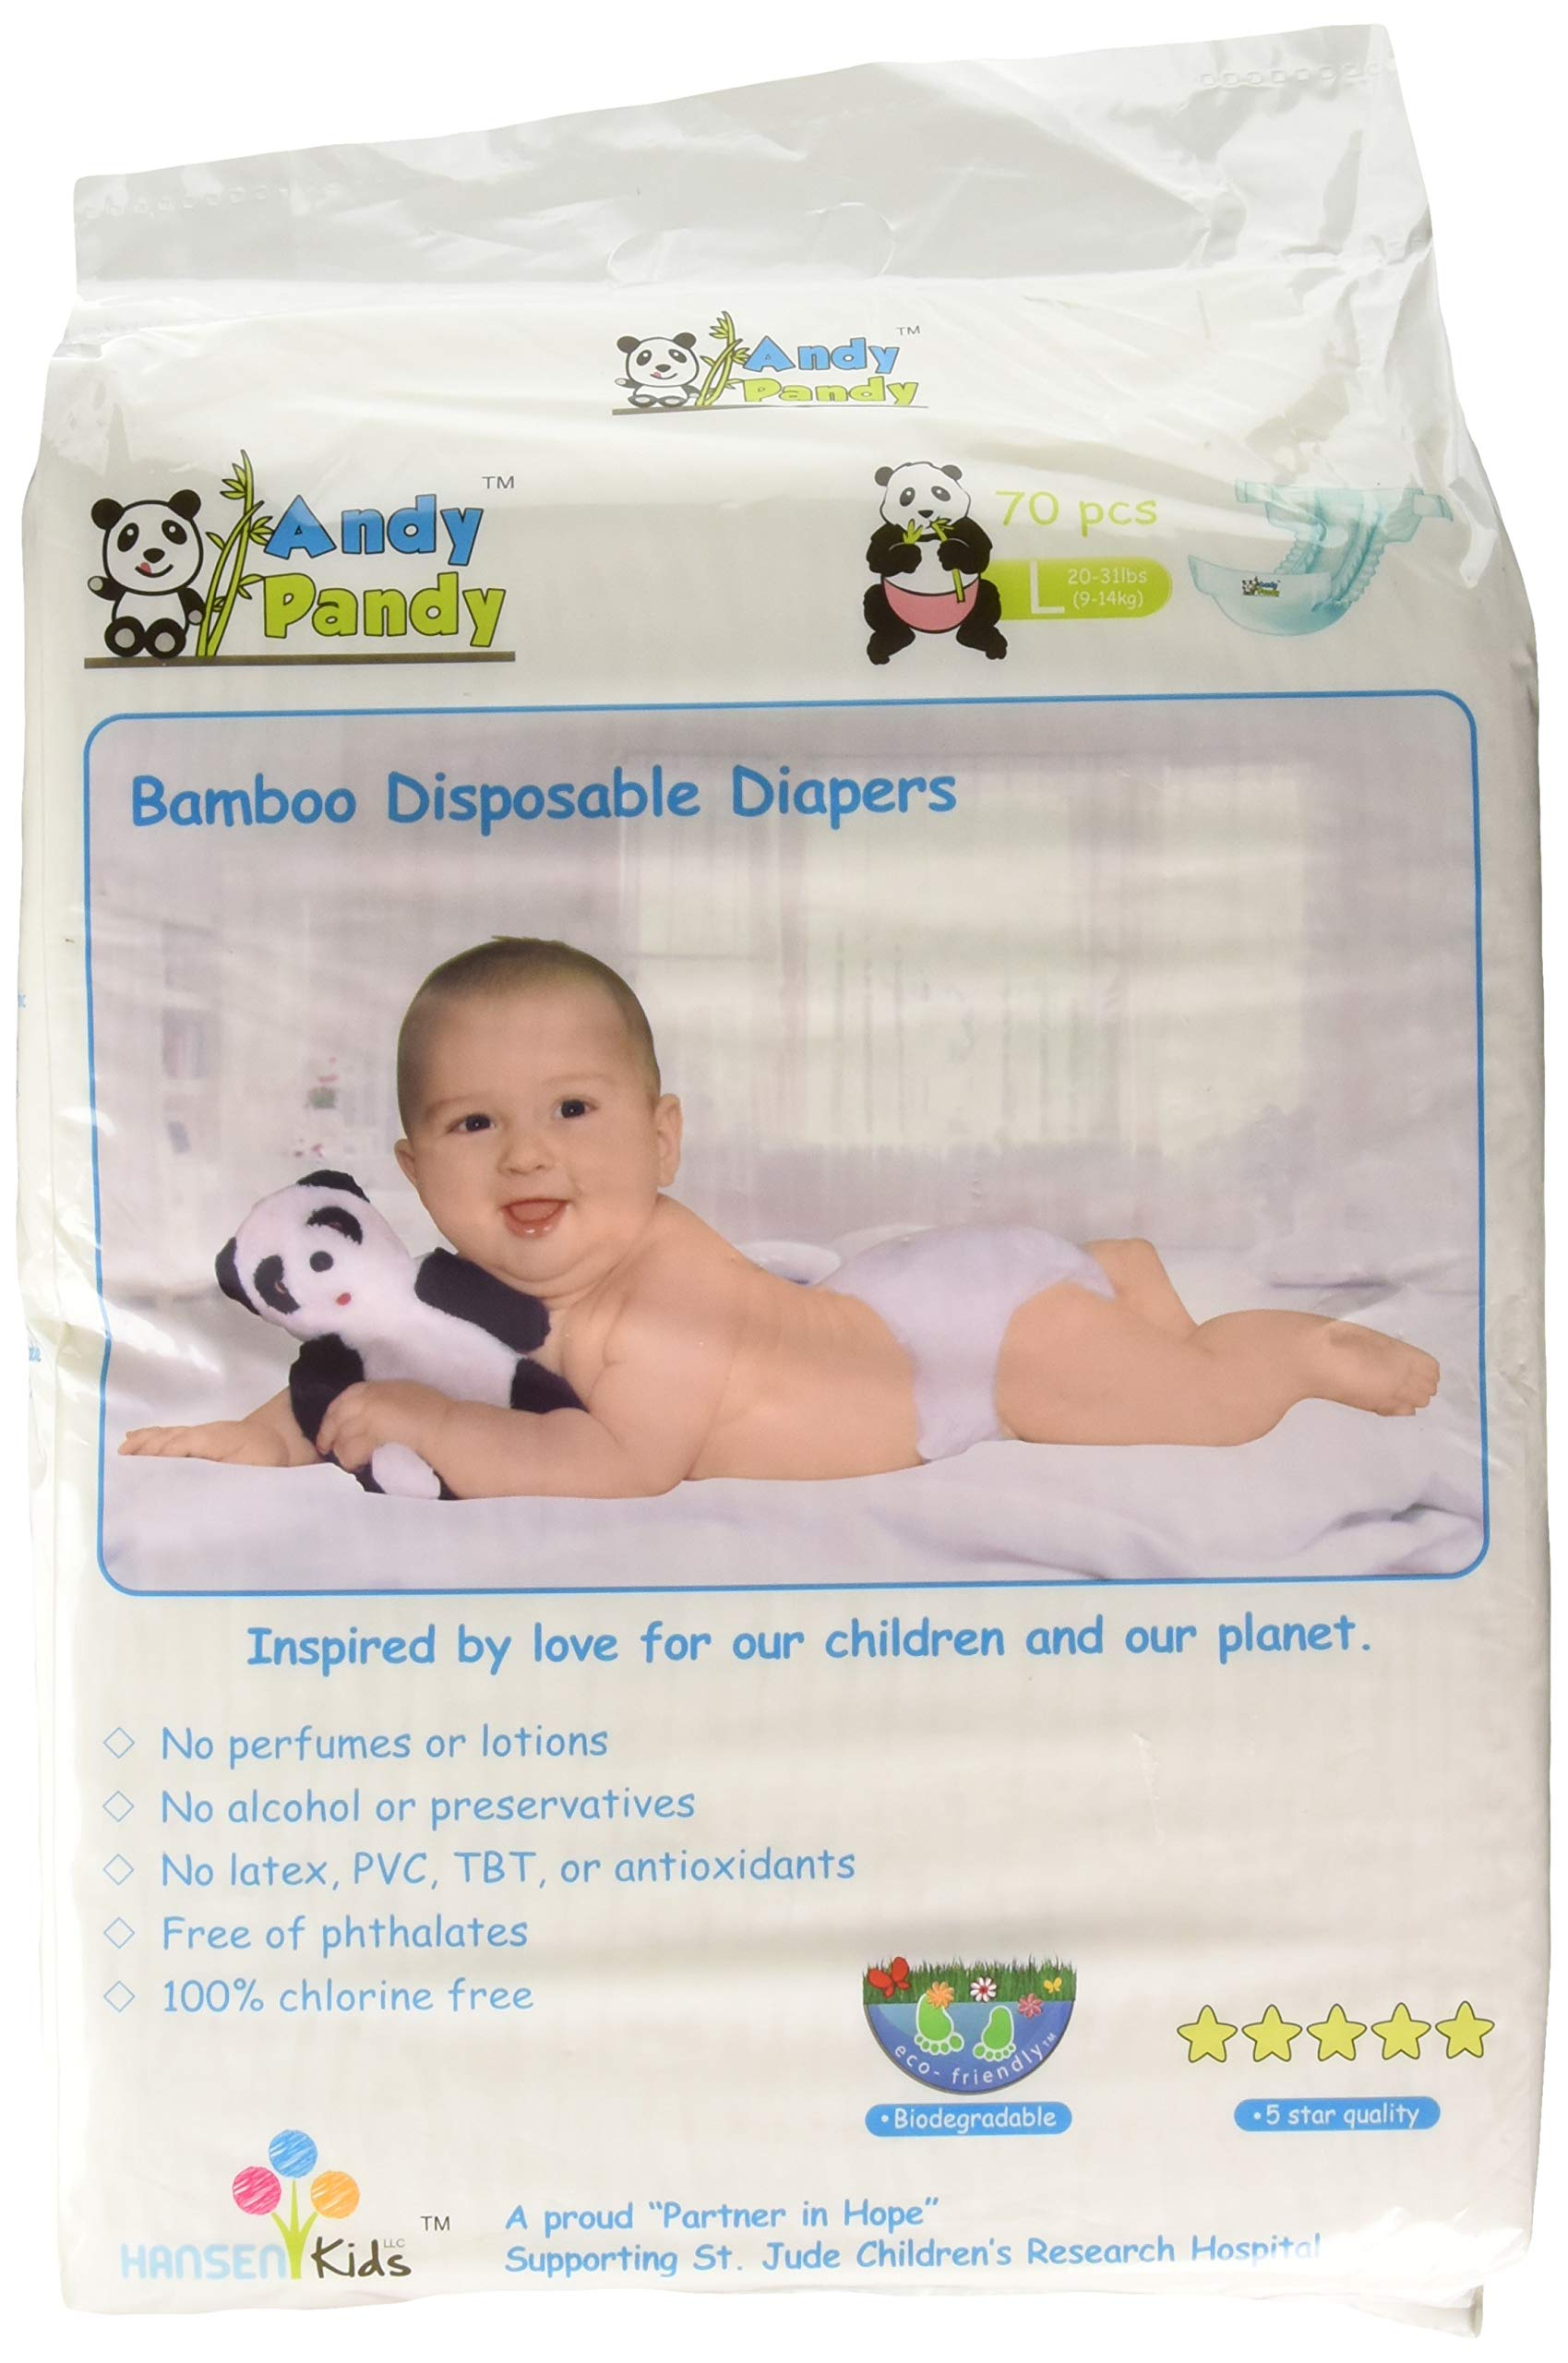 Eco Friendly Premium Bamboo Disposable Diapers by Andy Pandy - Large - for Babies Weighing 20-31 lbs - 70 Count by Andy Pandy